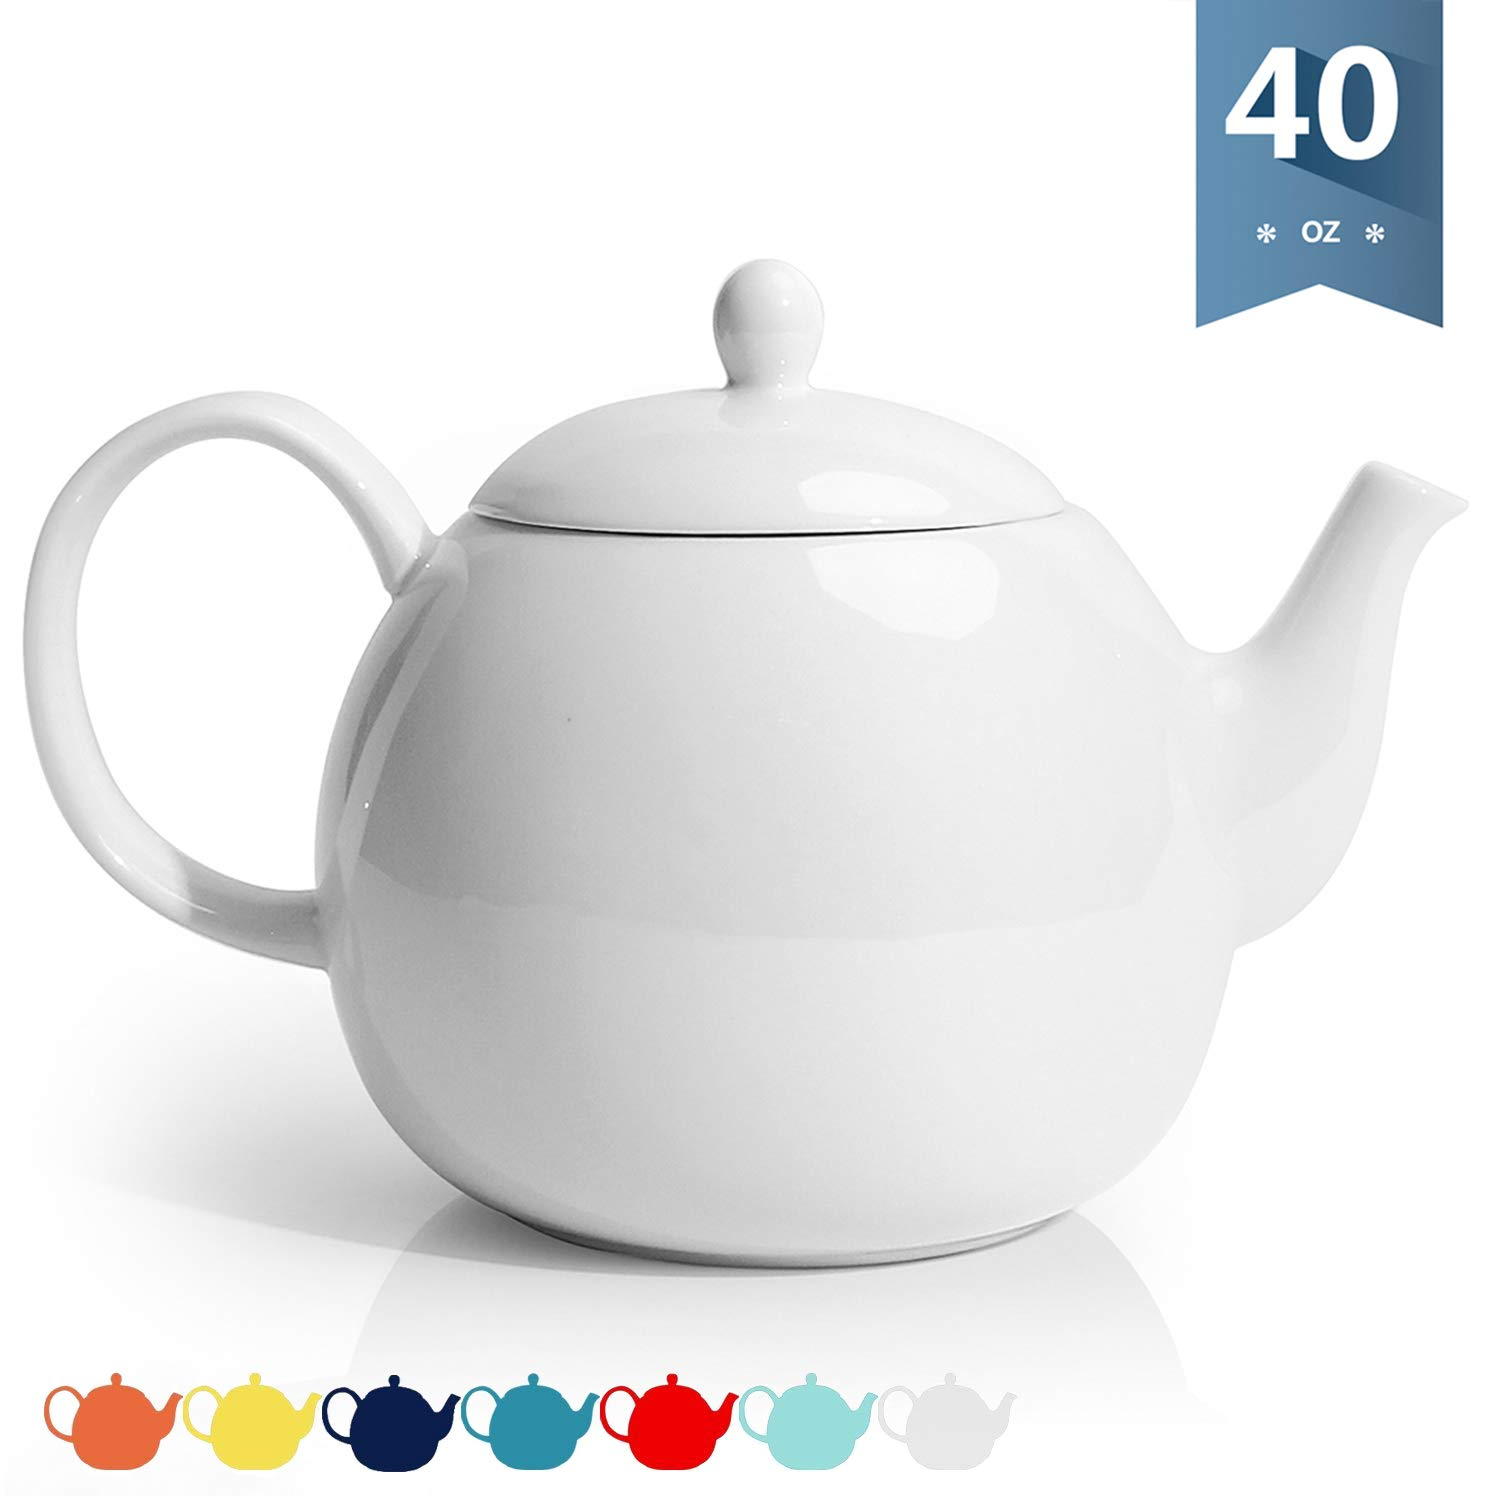 Sweese 220.101 Porcelain Teapot, 40 Ounce Tea Pot - Large Enough for 5 Cups, White by Sweese